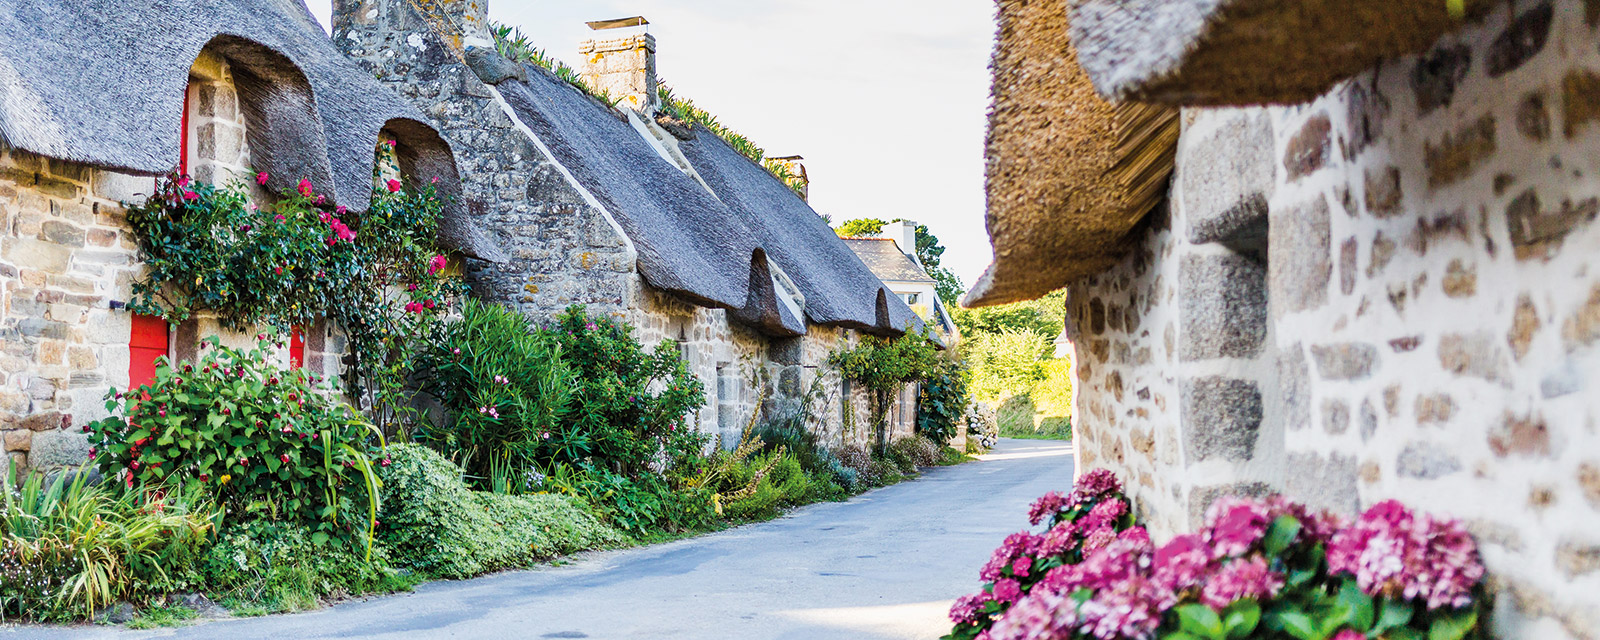 Kercanic, the most flowery thatched houses hamlet